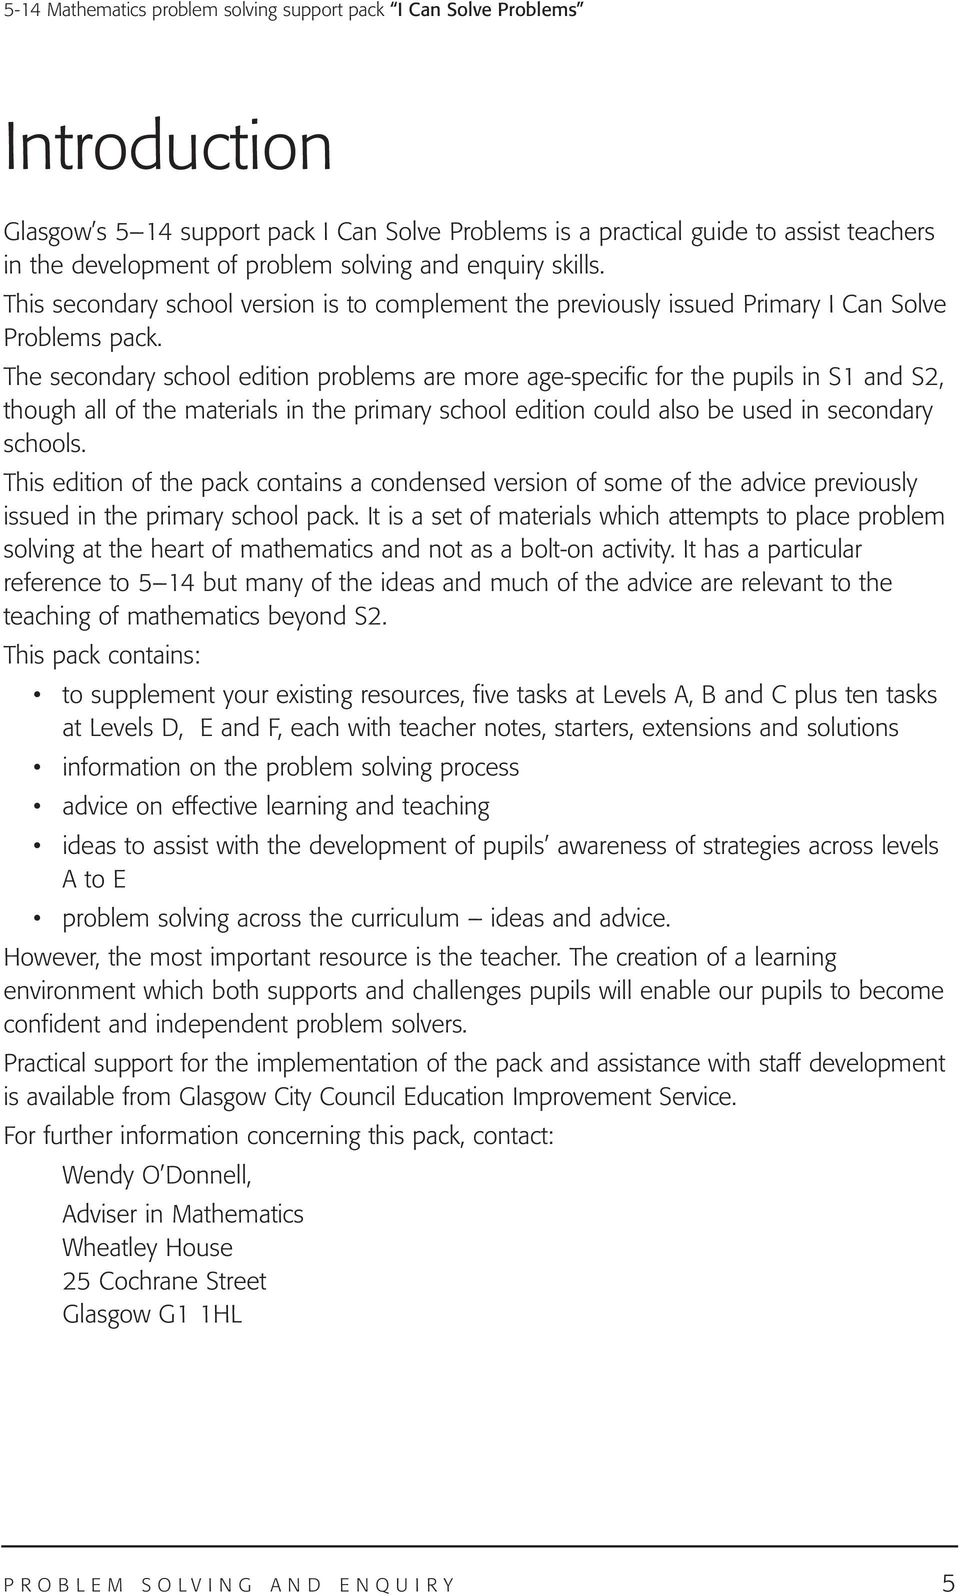 The secondary school edition problems are more age-specific for the pupils in S1 and S2, though all of the materials in the primary school edition could also be used in secondary schools.